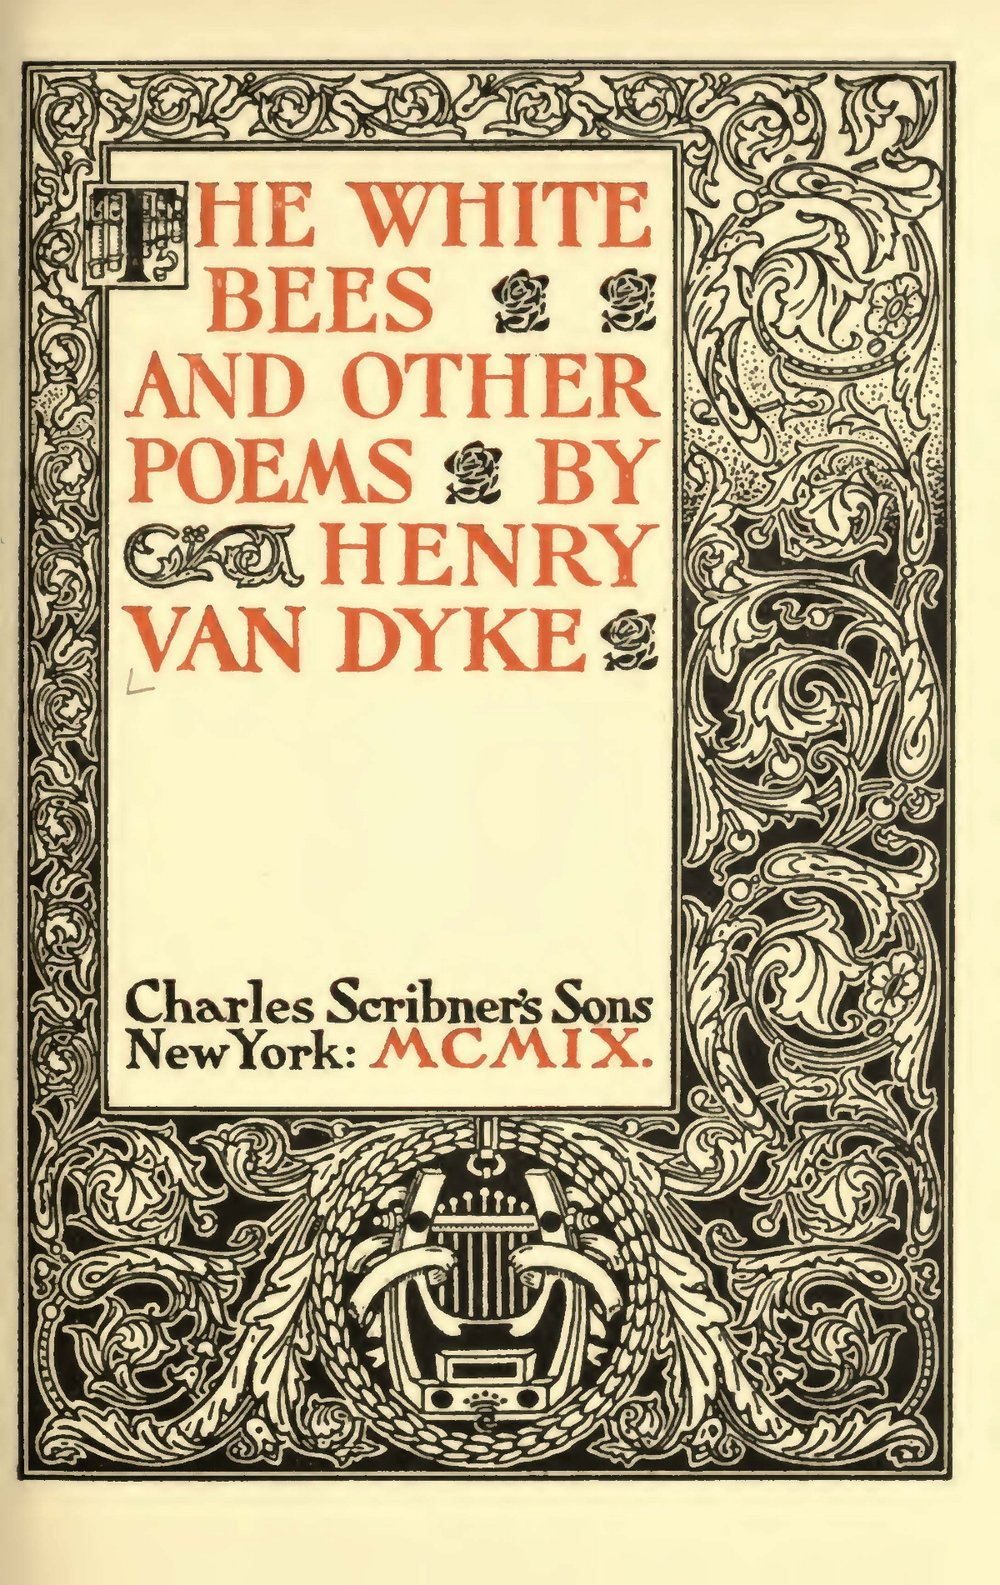 Van Dyke, Jr., Henry Jackson, The White Bees Title Page.jpg